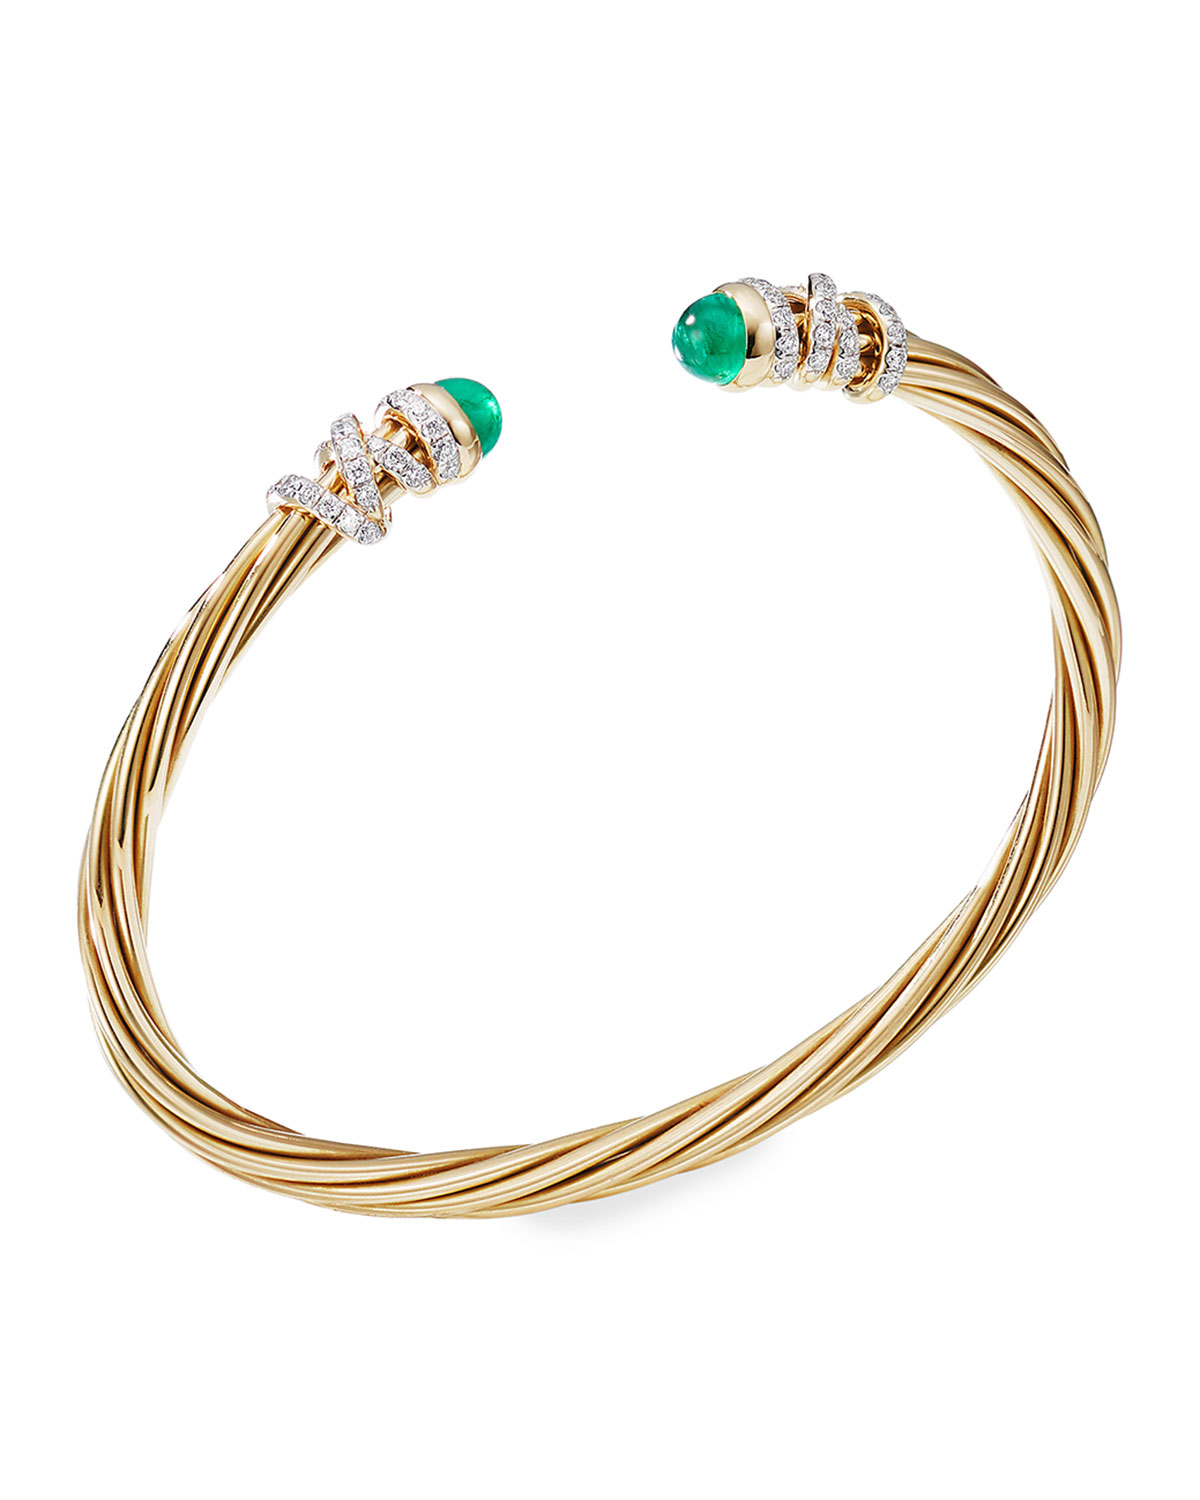 David Yurman Helena 18k Emerald & Diamond Wrapped Bangle, Size L